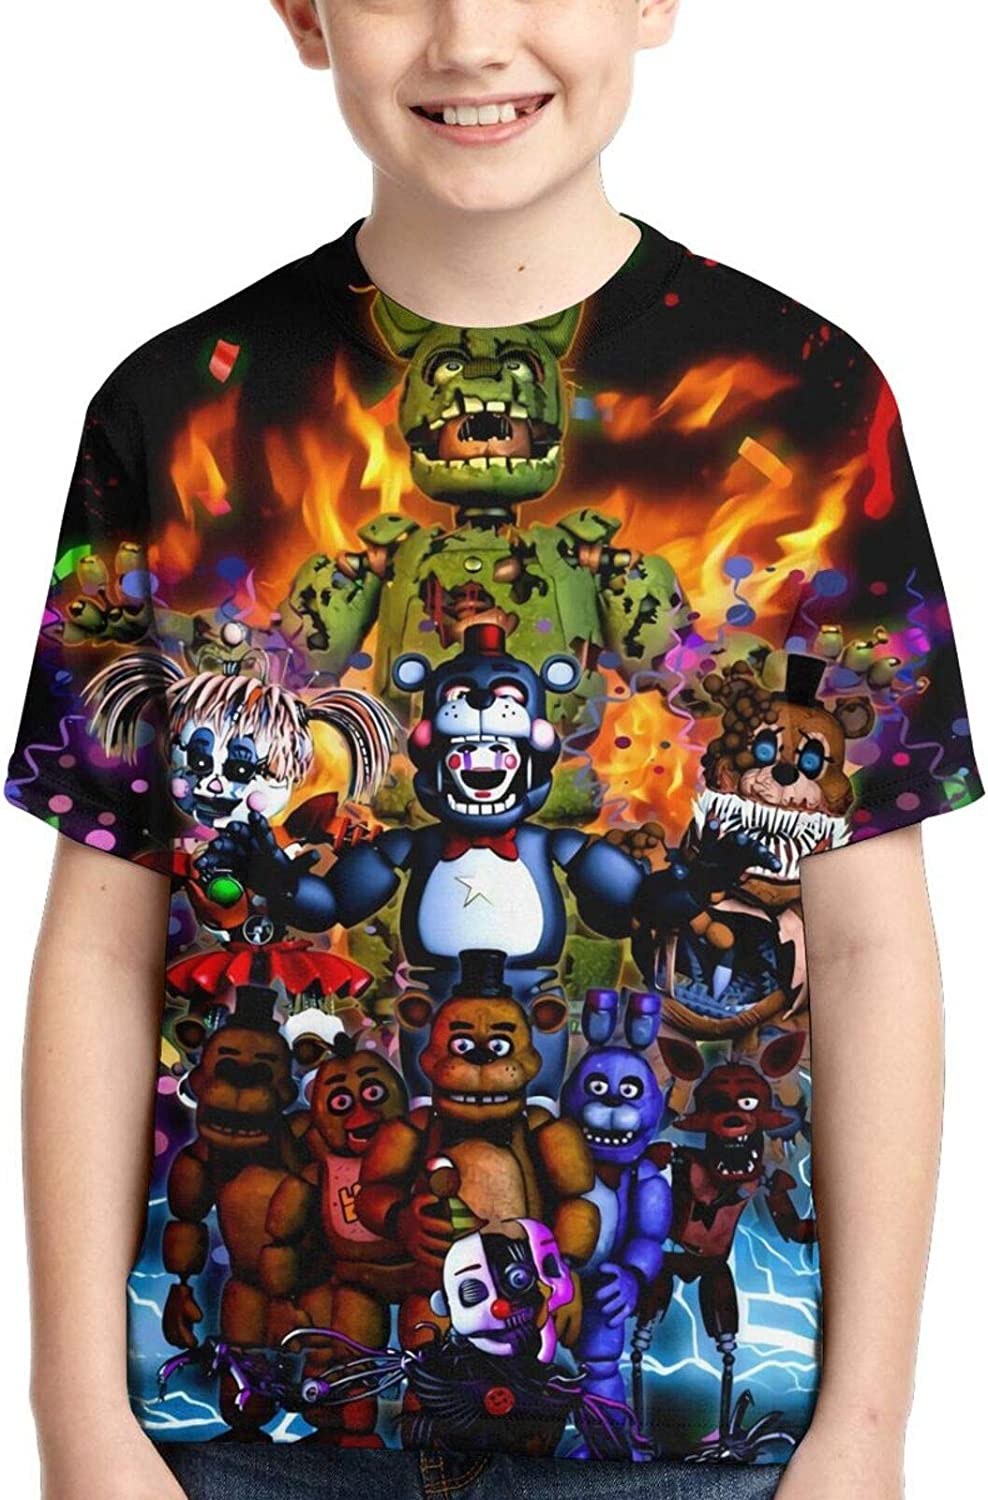 Emejate Free 5 ☆ very popular shipping Five Nights at Freddy's Youth Unisex Crewneck Shirt Bear